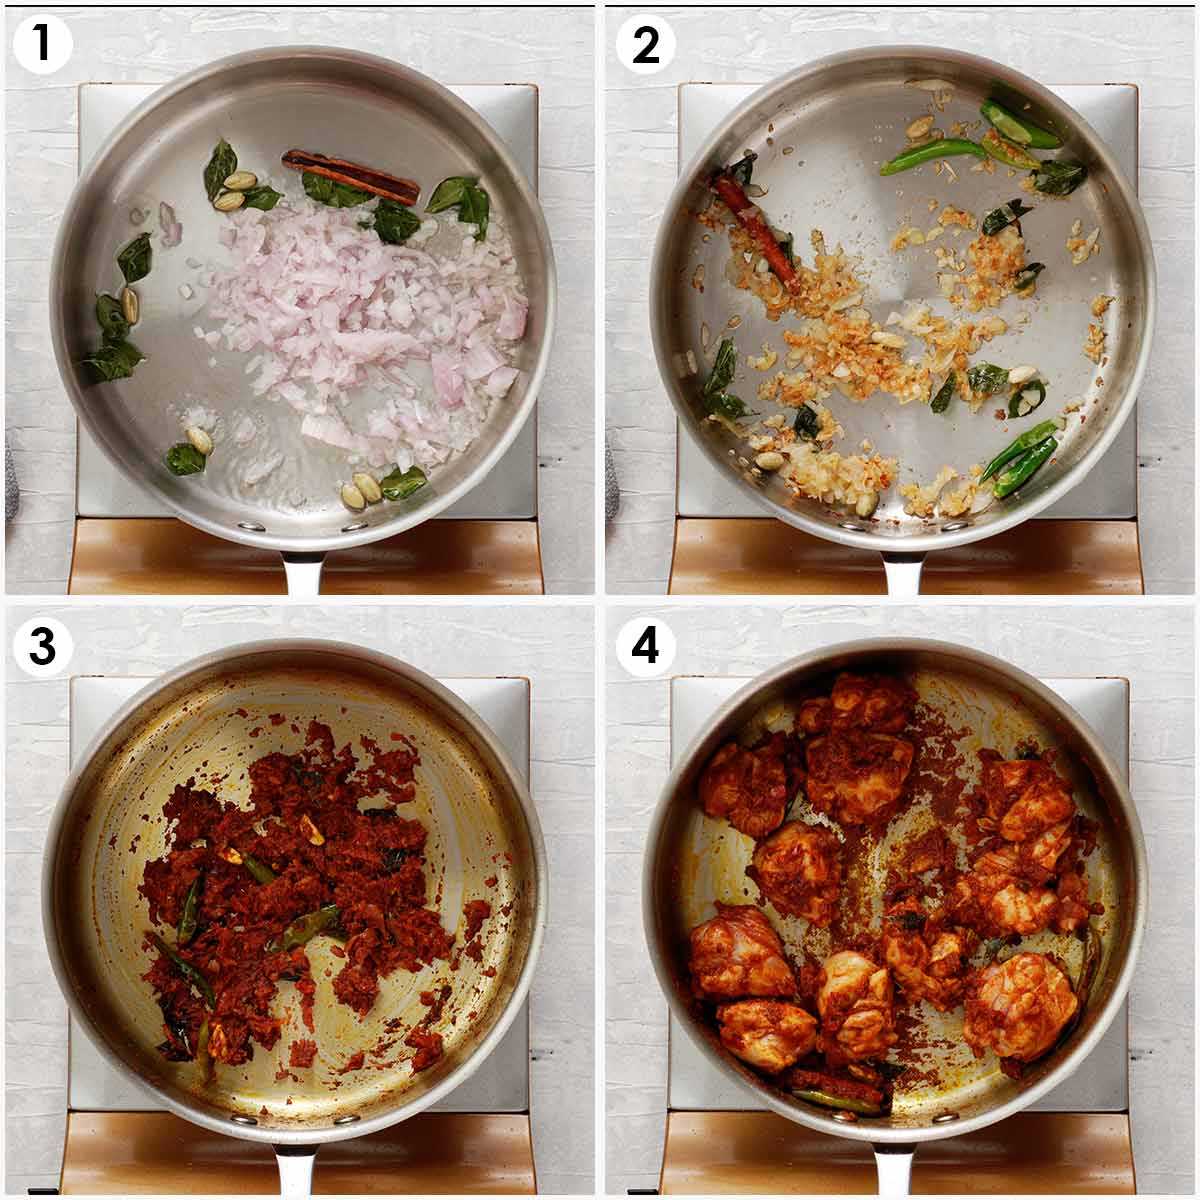 Four image collage showing how to make chicken curry.